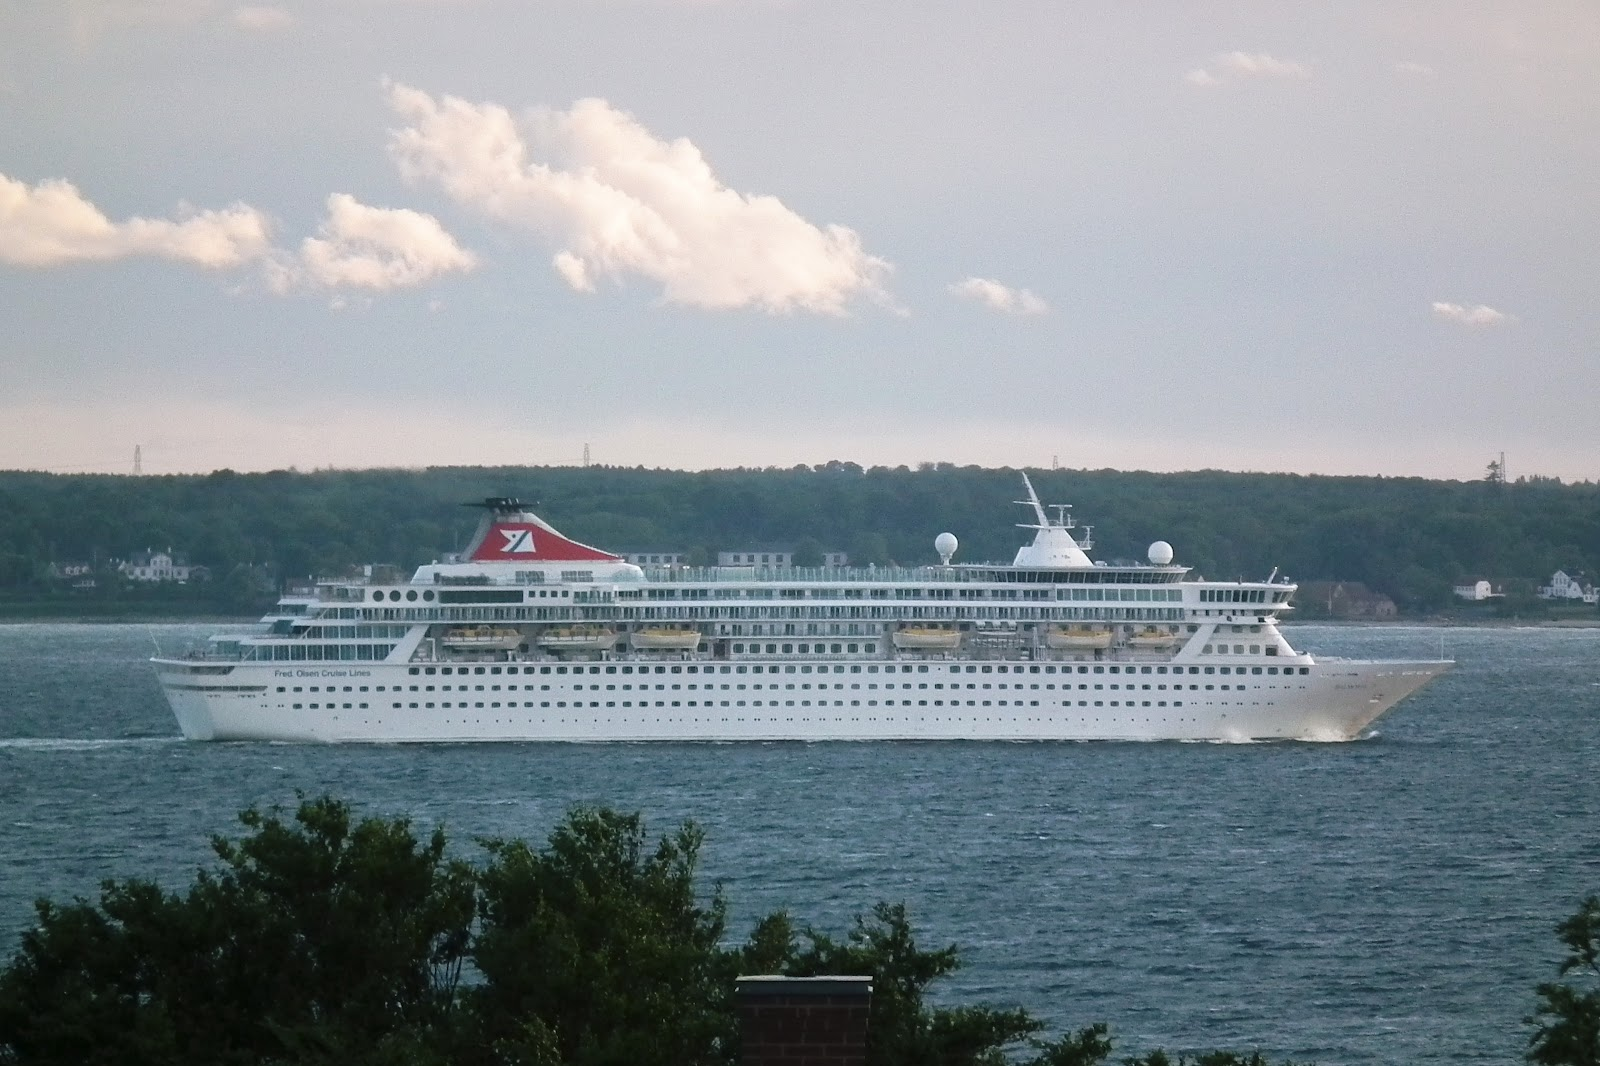 The things i enjoy the cruise ship balmoral in the sound